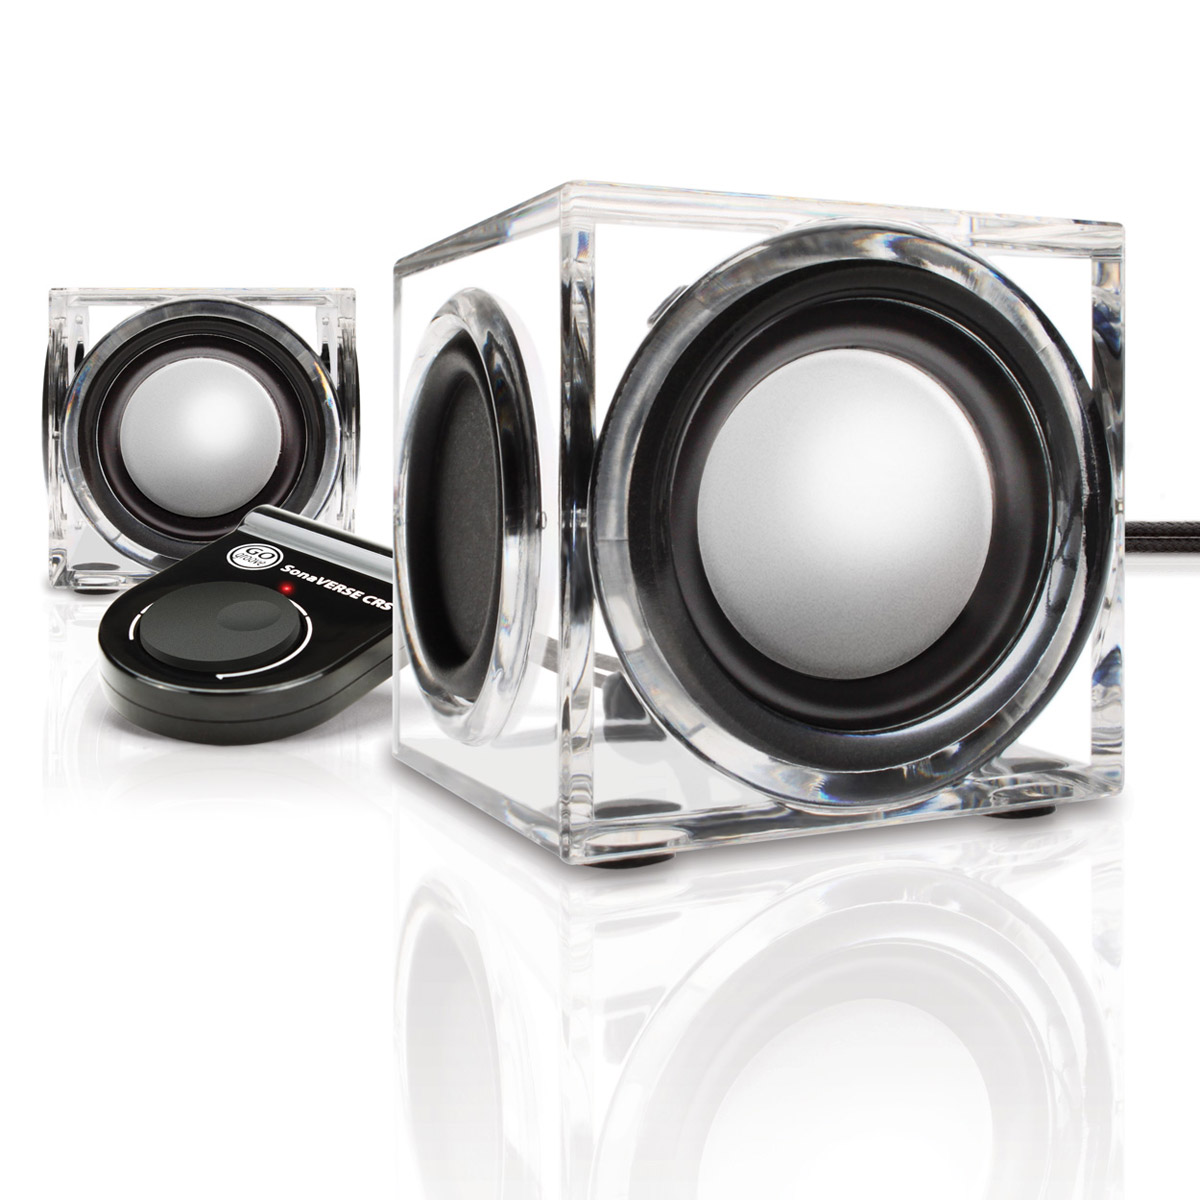 sonaverse crs usb powered 2 0 speakers w clear acrylic housing dual drivers ebay. Black Bedroom Furniture Sets. Home Design Ideas